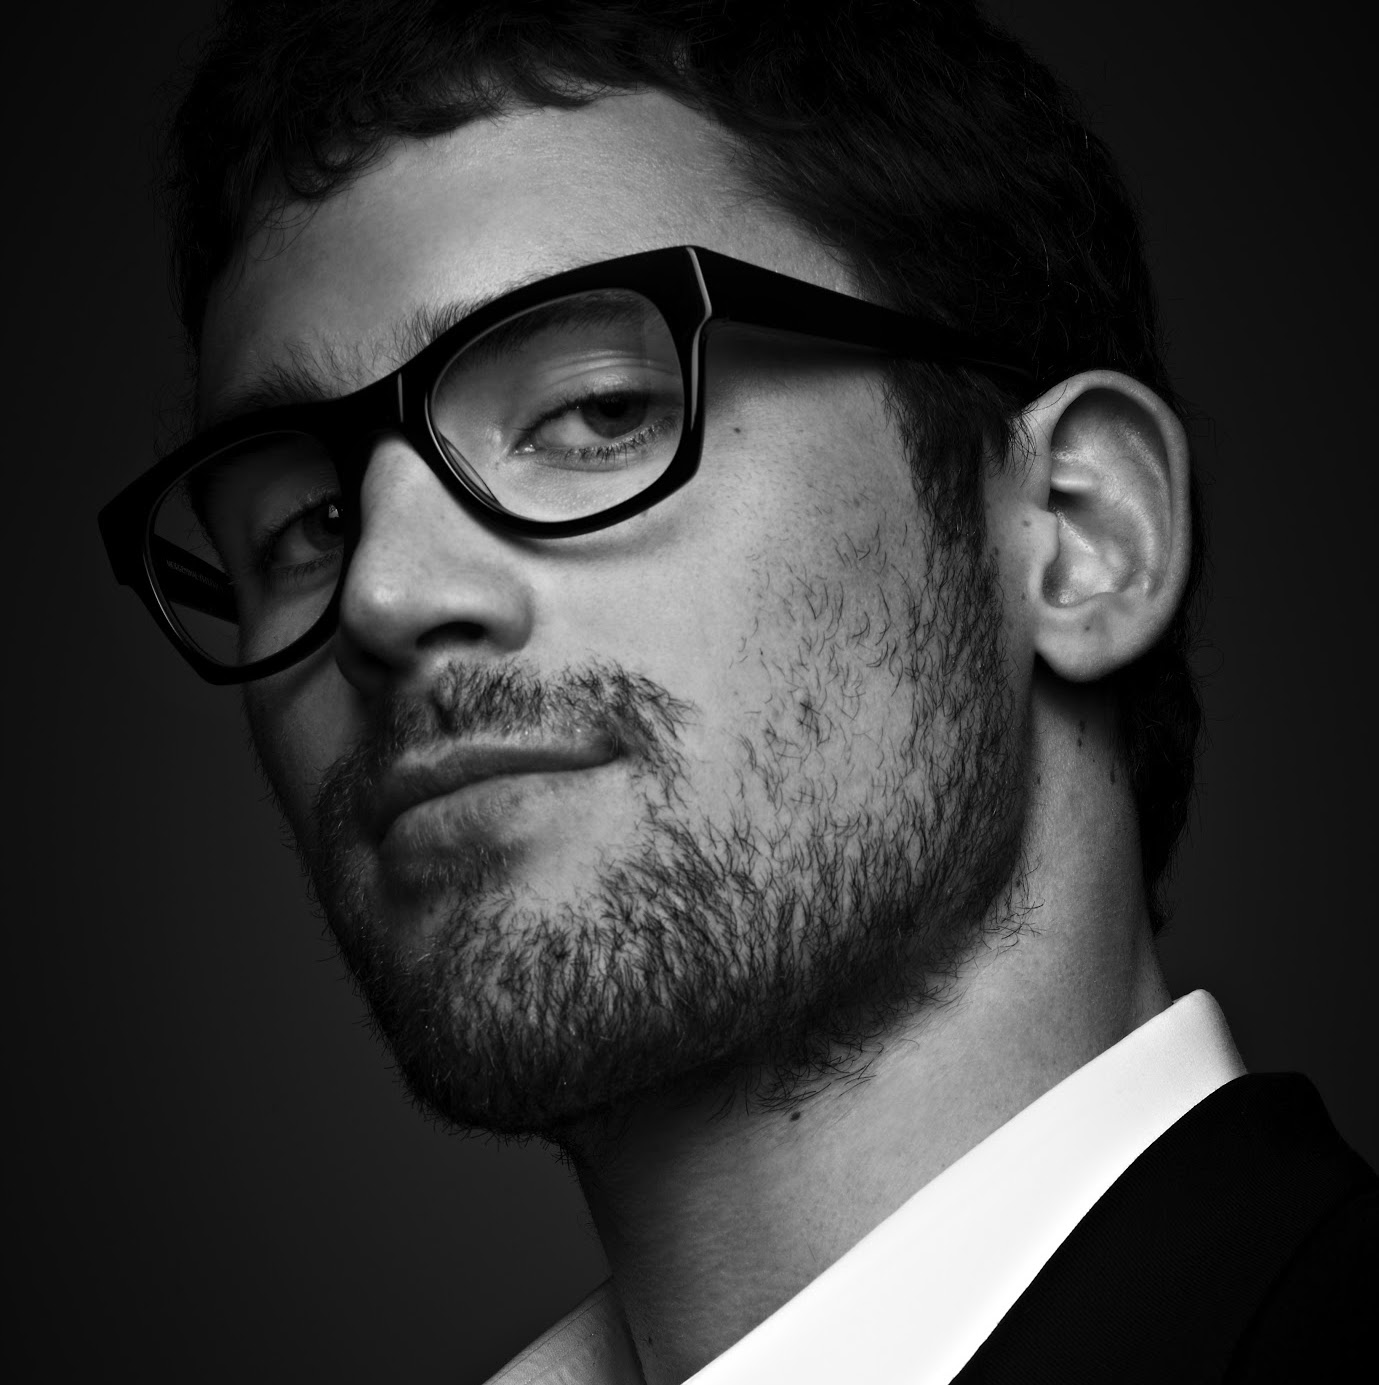 Kevin Love Biography - Basketball Player